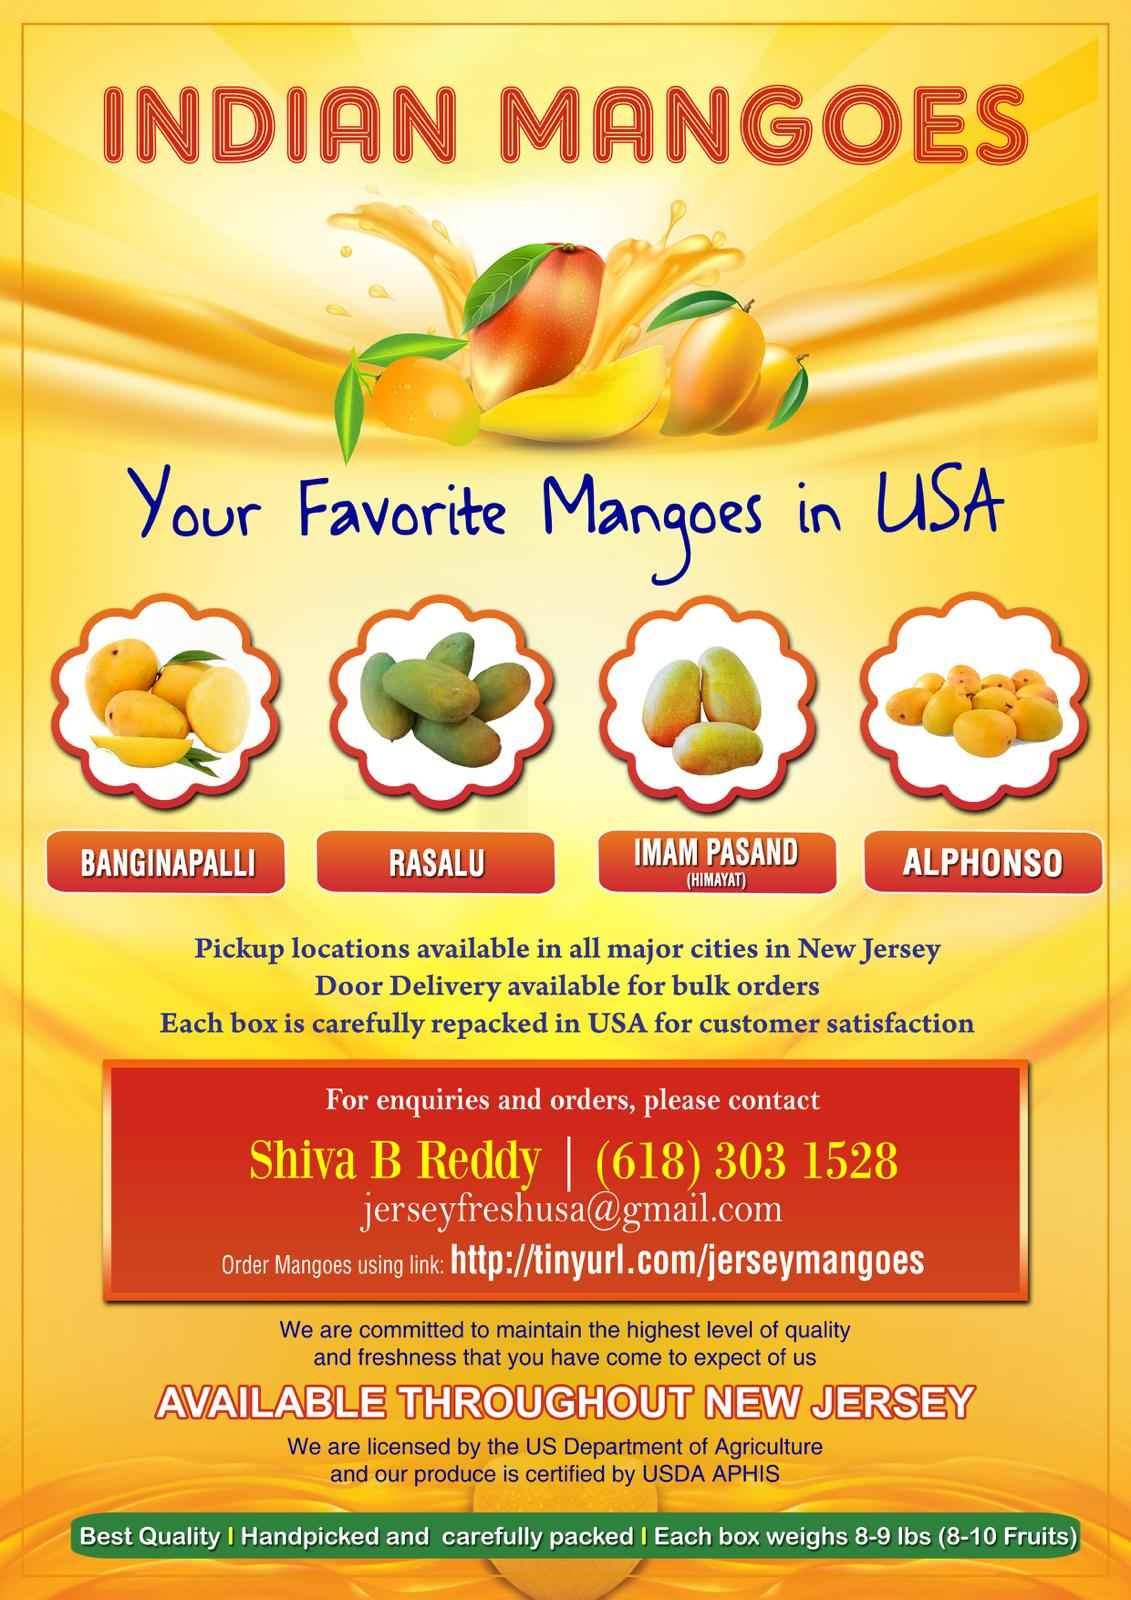 Indian Mangoes in New Jersey